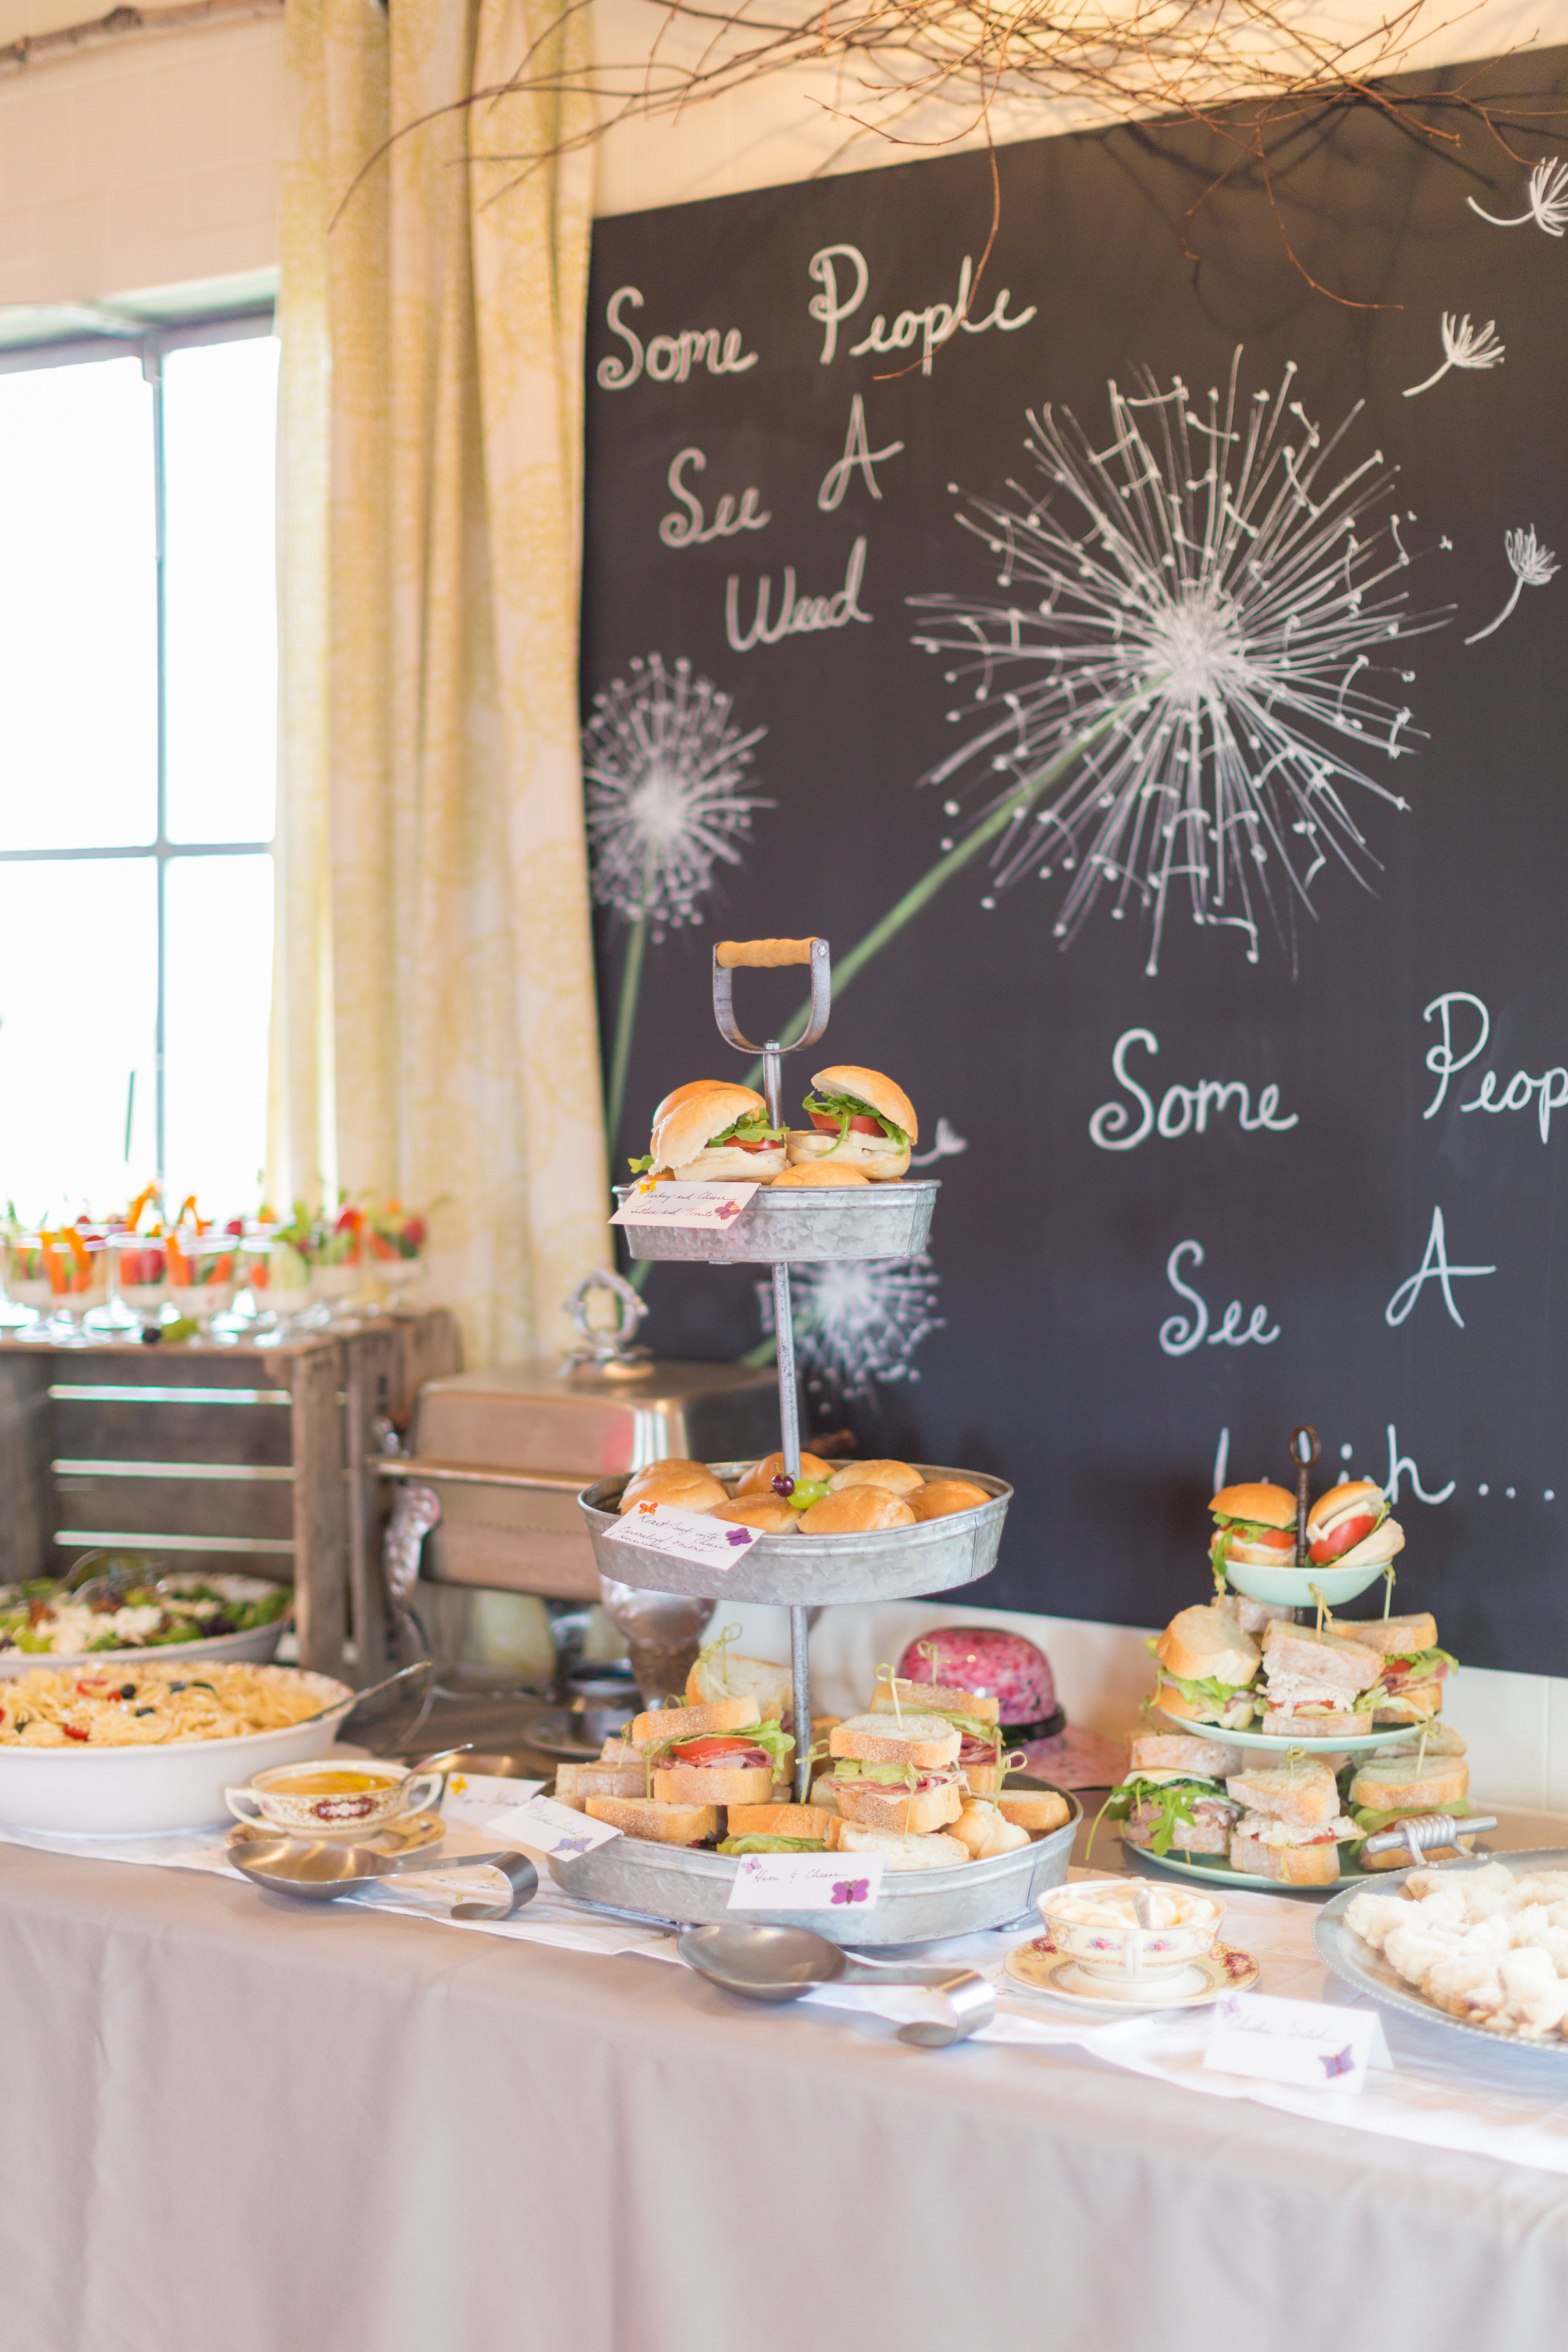 Catering by Rode's